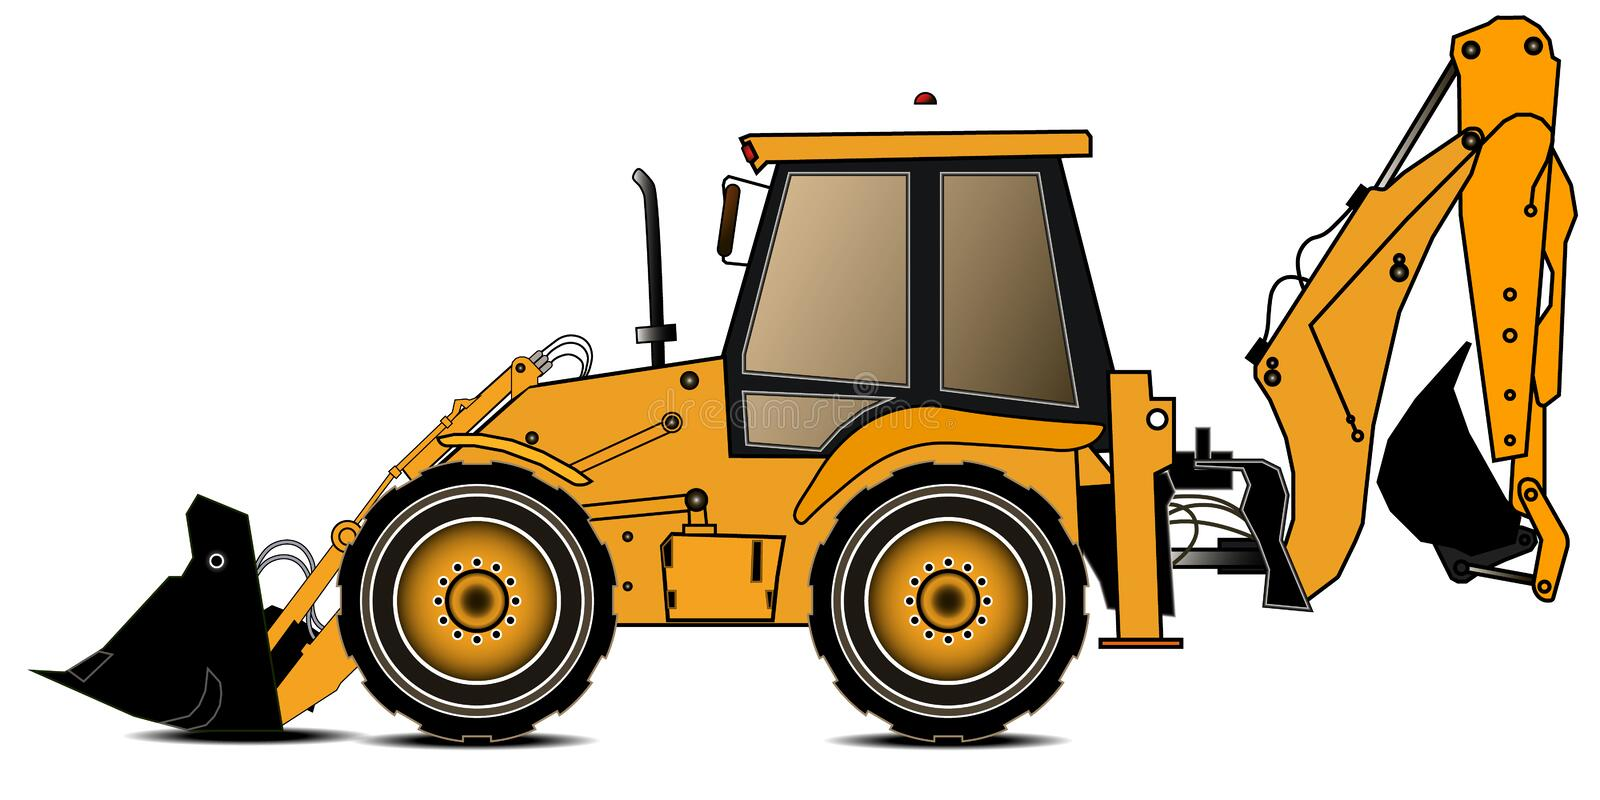 Yellow backhoe loader on a white background. Construction machinery. Special equipment. Vector illustration royalty free illustration